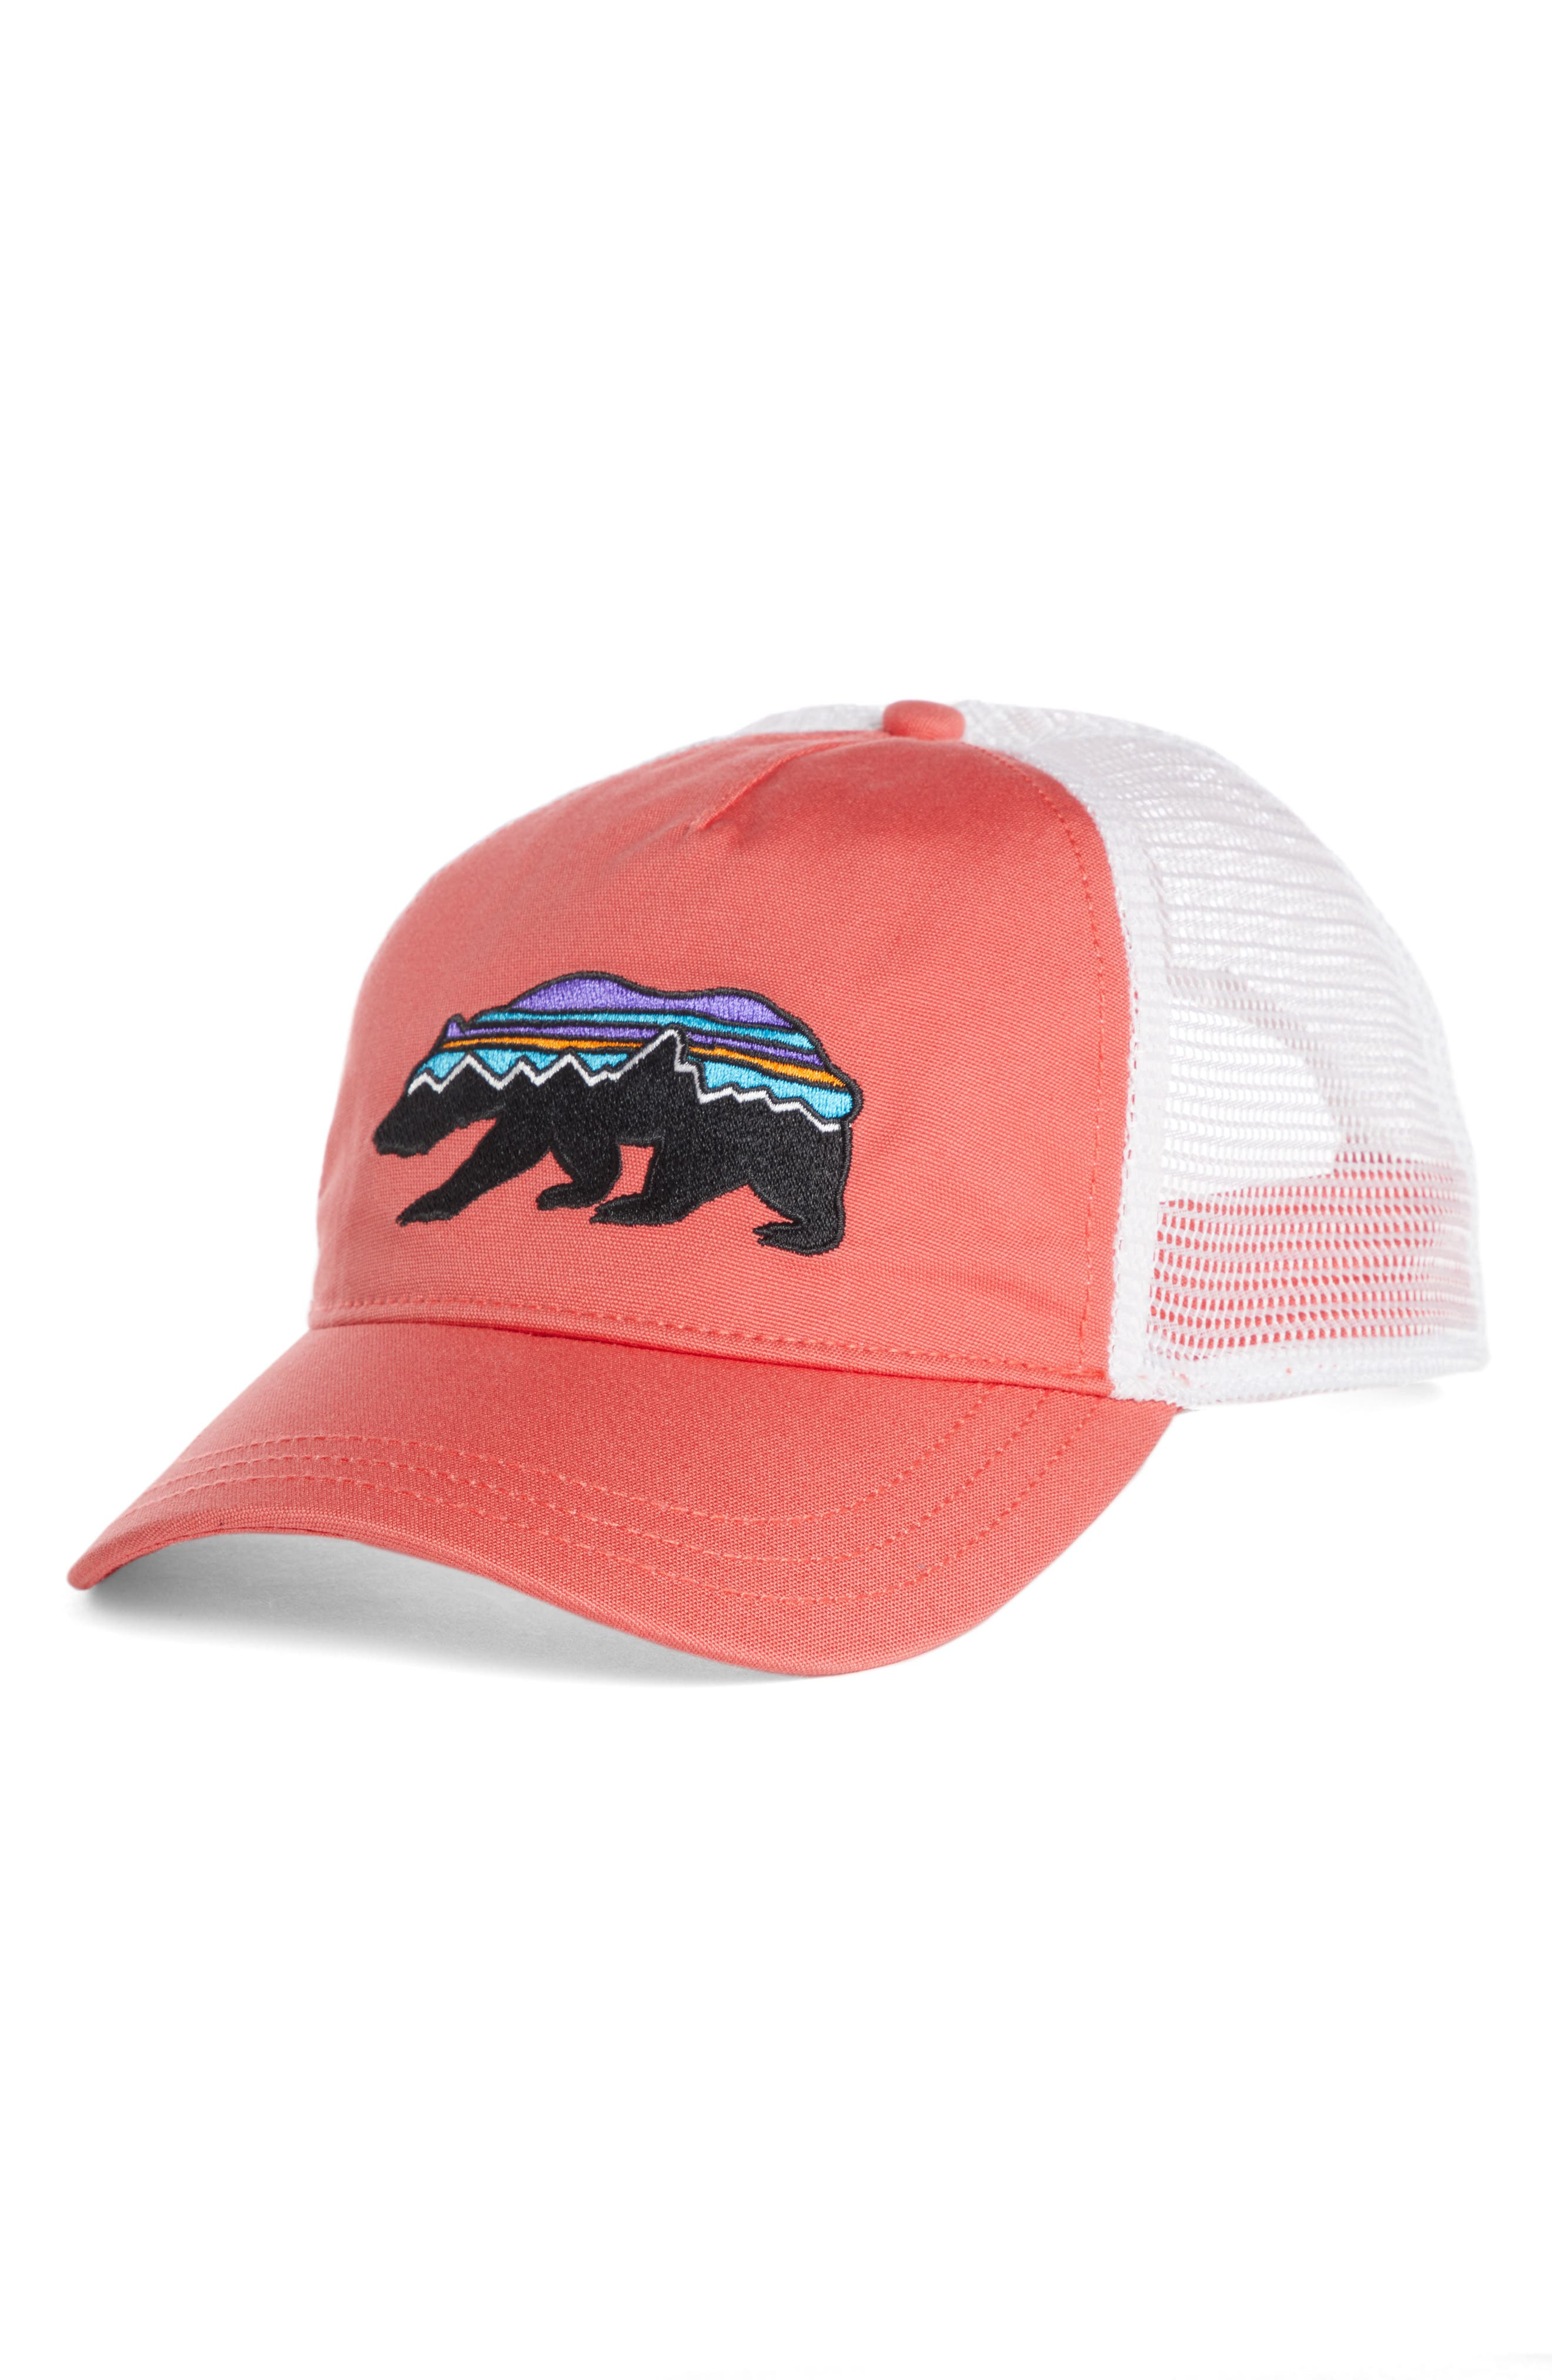 Fitz Roy Bear Trucker Hat,                             Main thumbnail 1, color,                             Spiced Coral